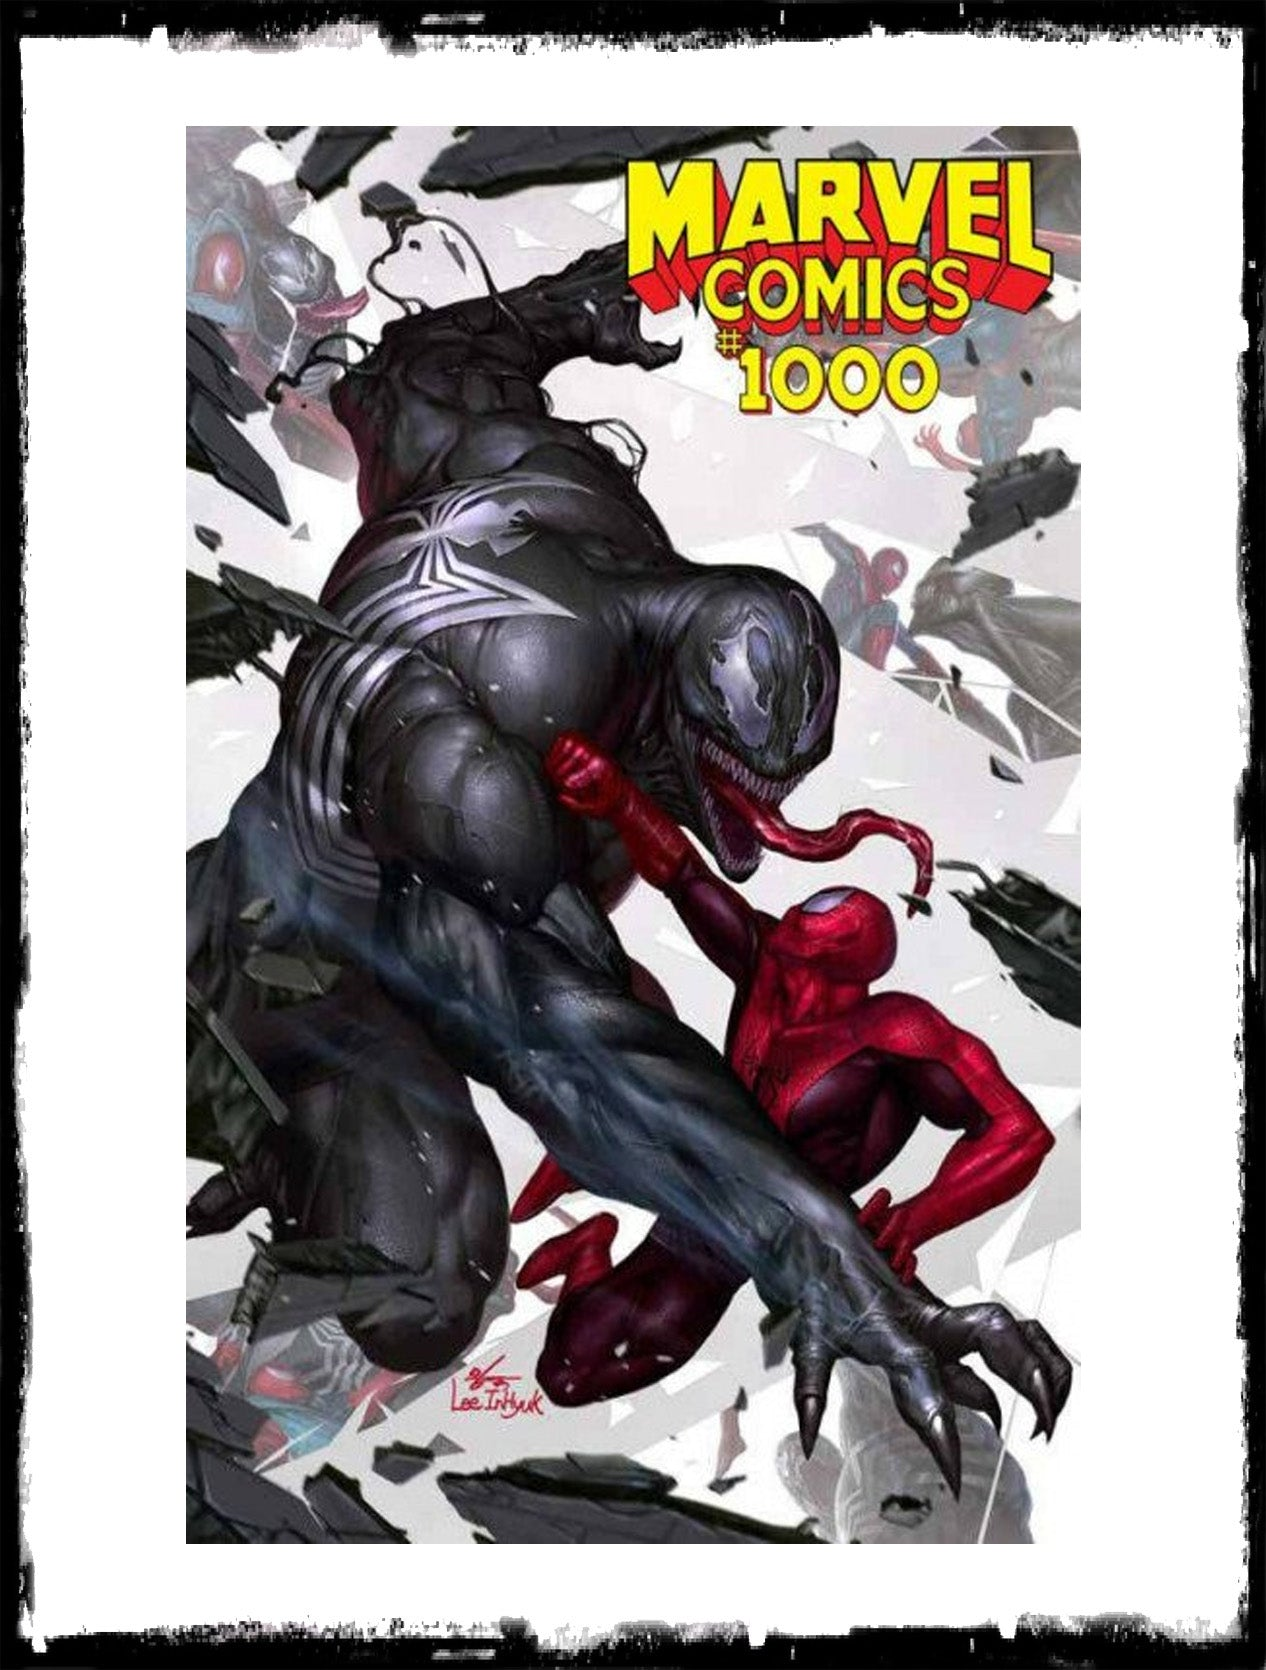 MARVEL COMICS #1000 - IN-HYUK LEE VARIANT (2019 - NM)